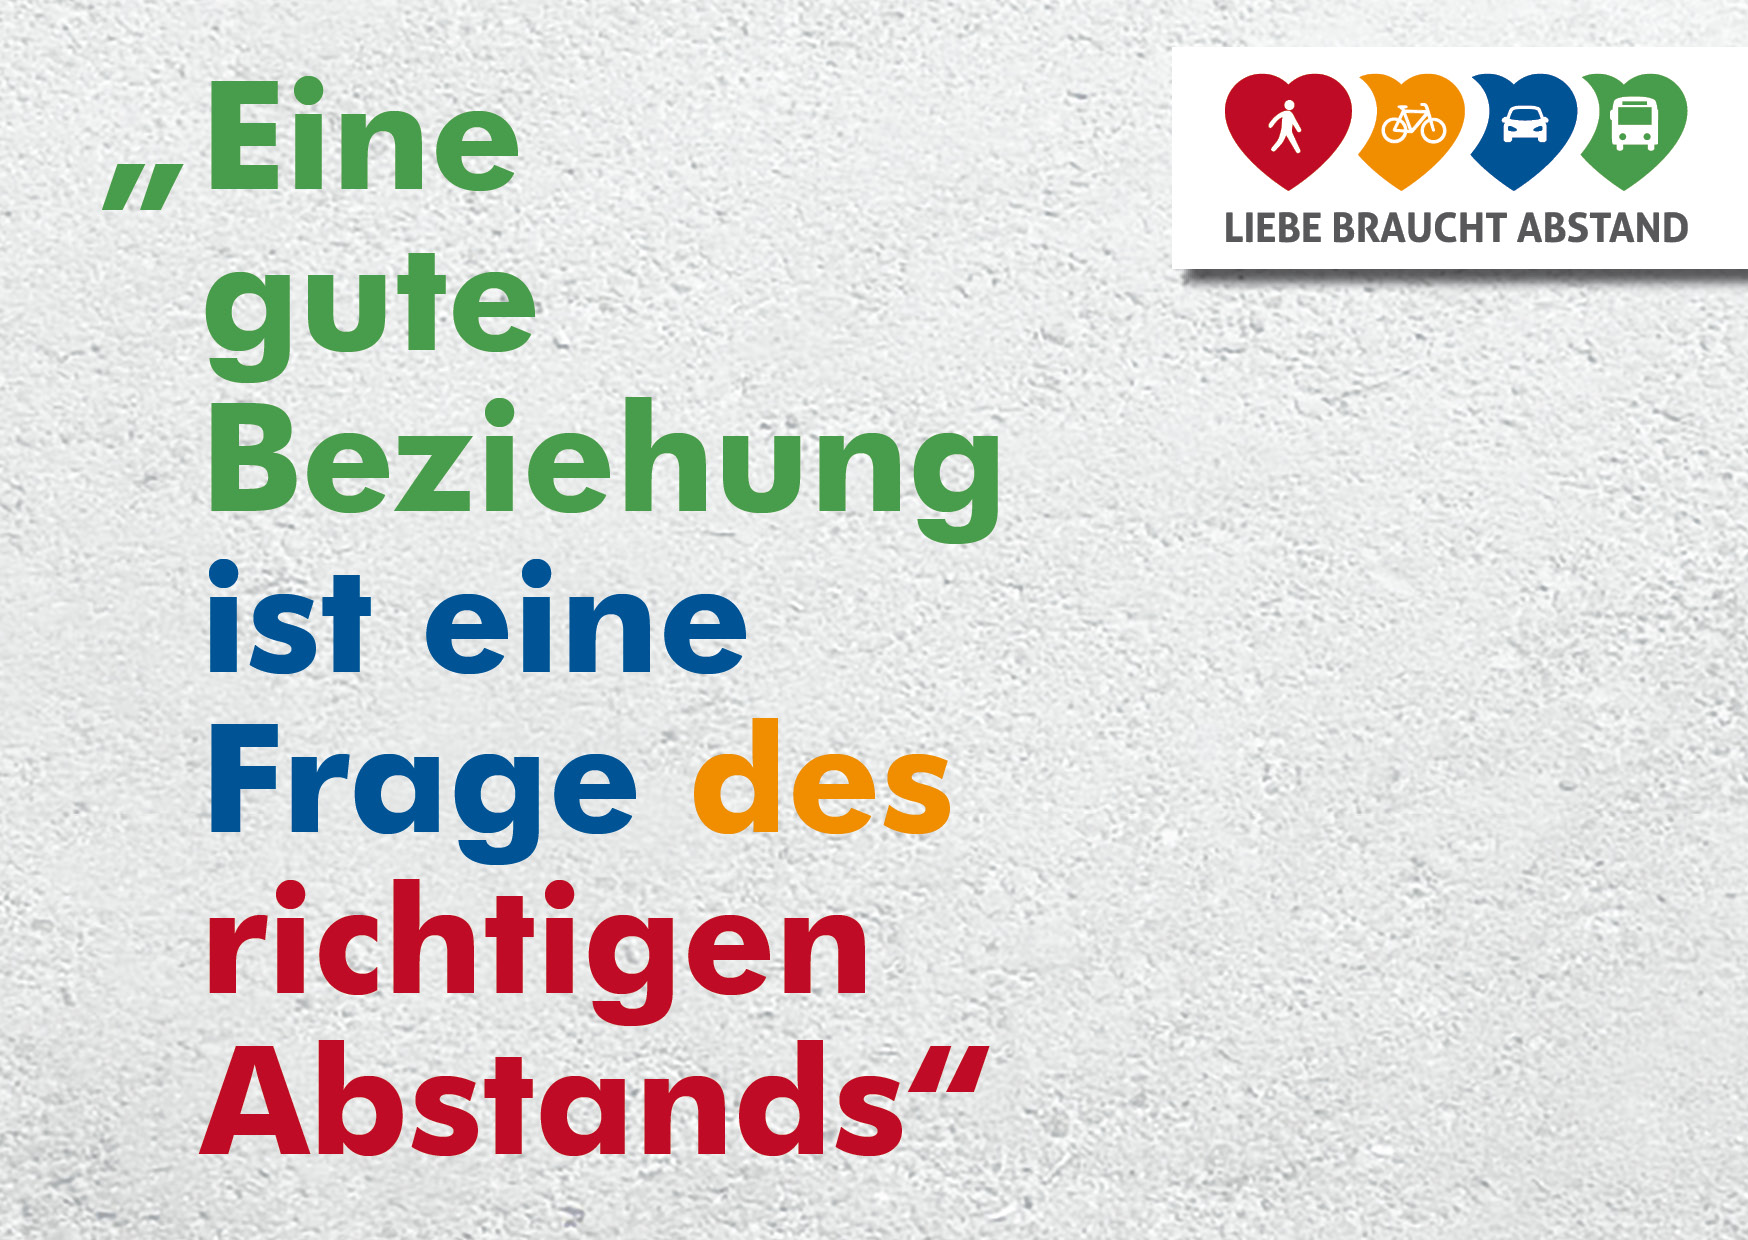 abstand in beziehung